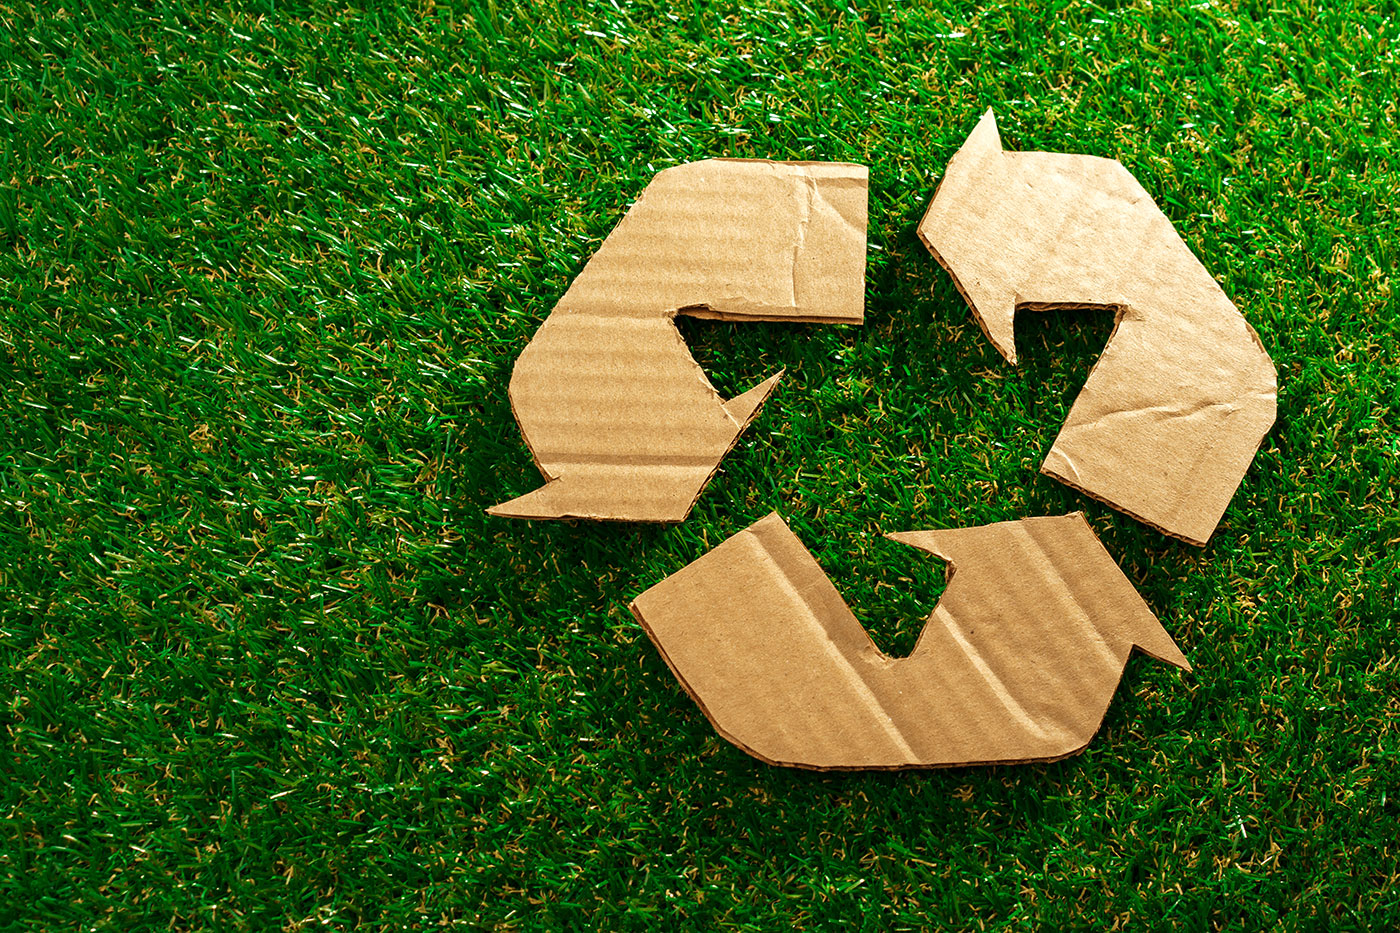 recycling-eco-concept-with-cardboard-recycle-sign